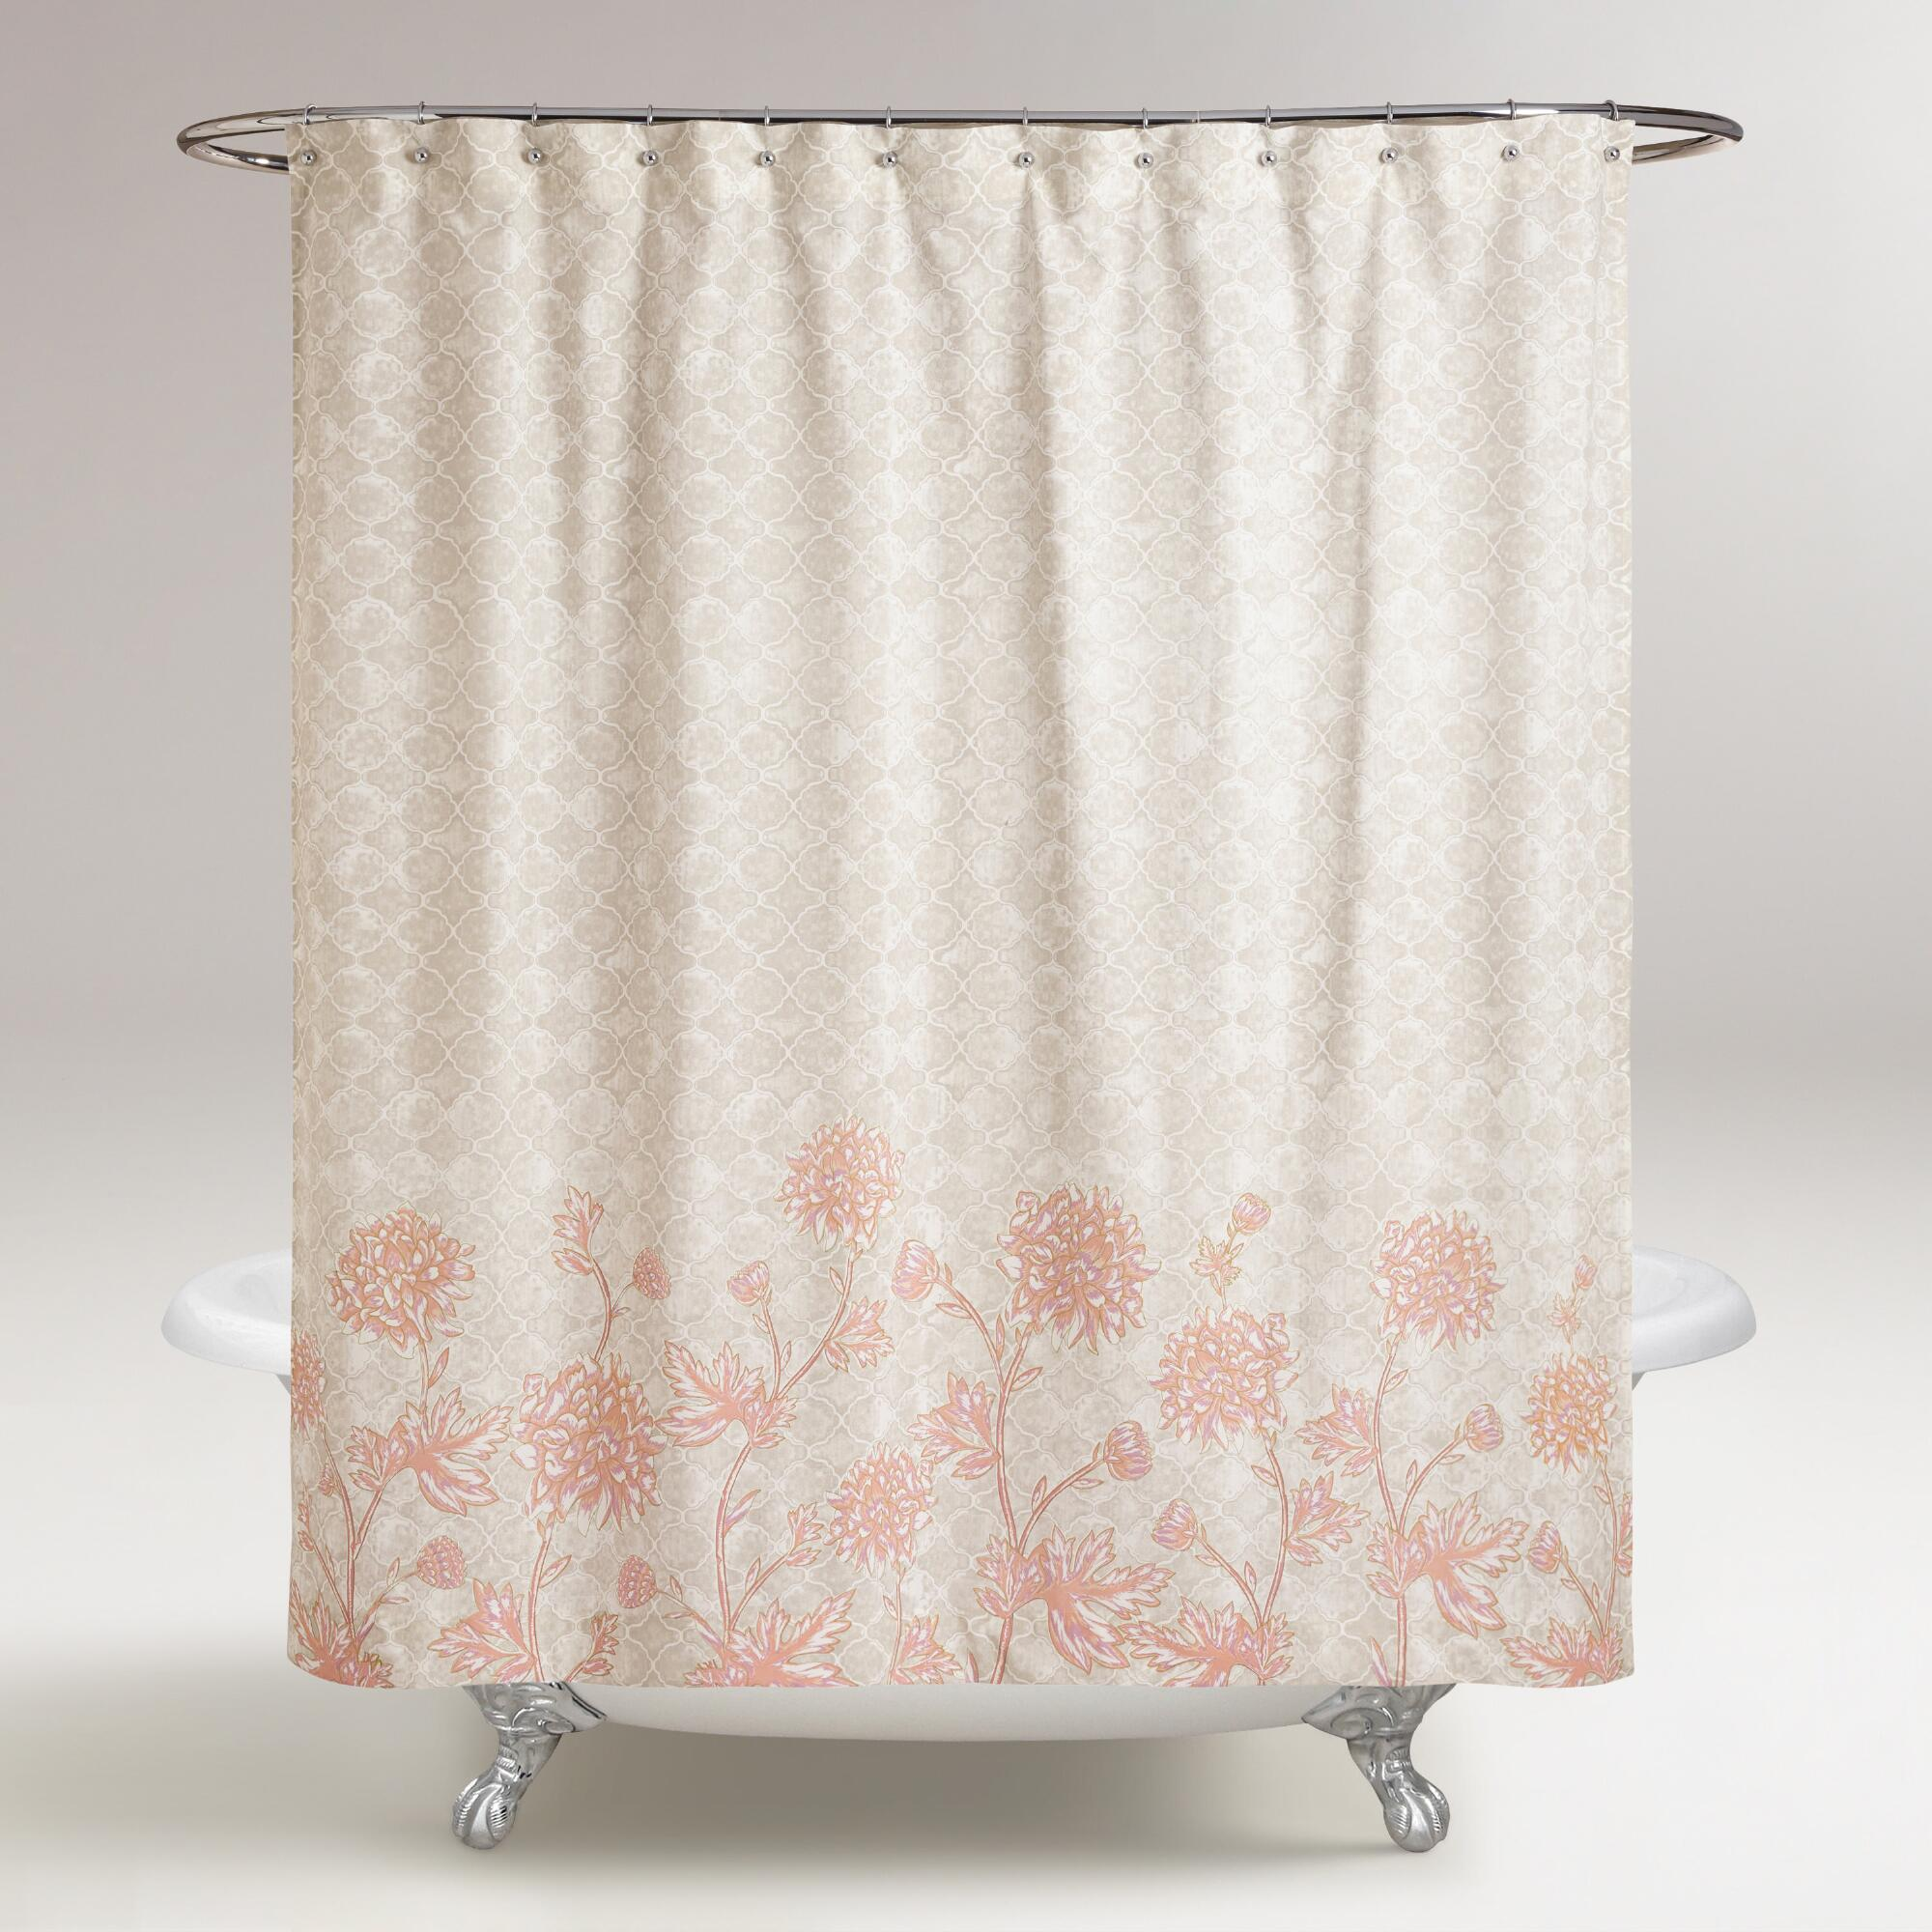 Gray and Blush Floral FIona Shower Curtain from Wordlmarket.com.jpg